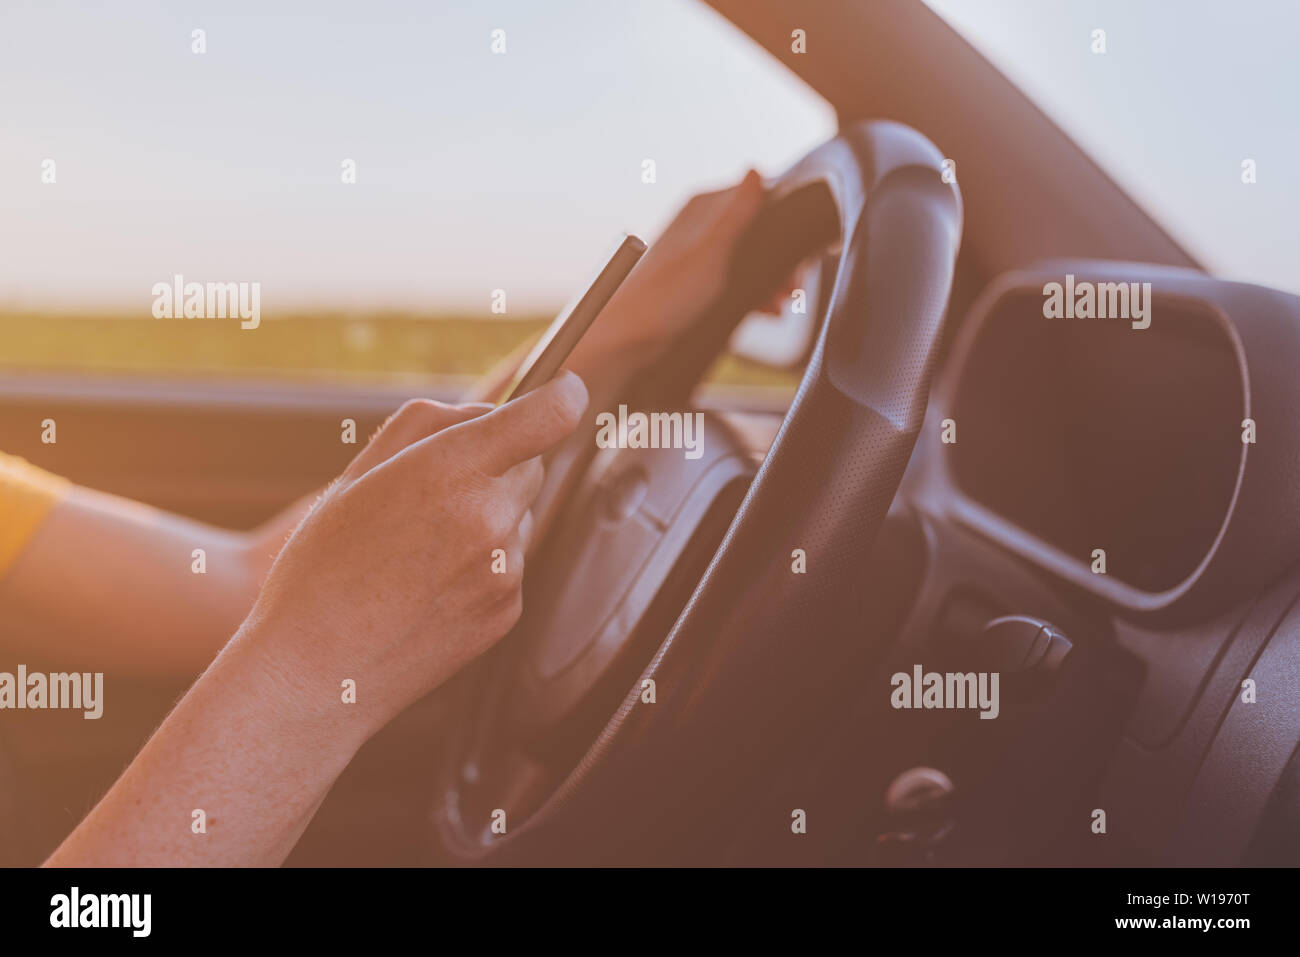 Dangerous texting while driving behavior, close up of female hands using mobile phone and operating motor vehicle on road through countryside, selecti Stock Photo